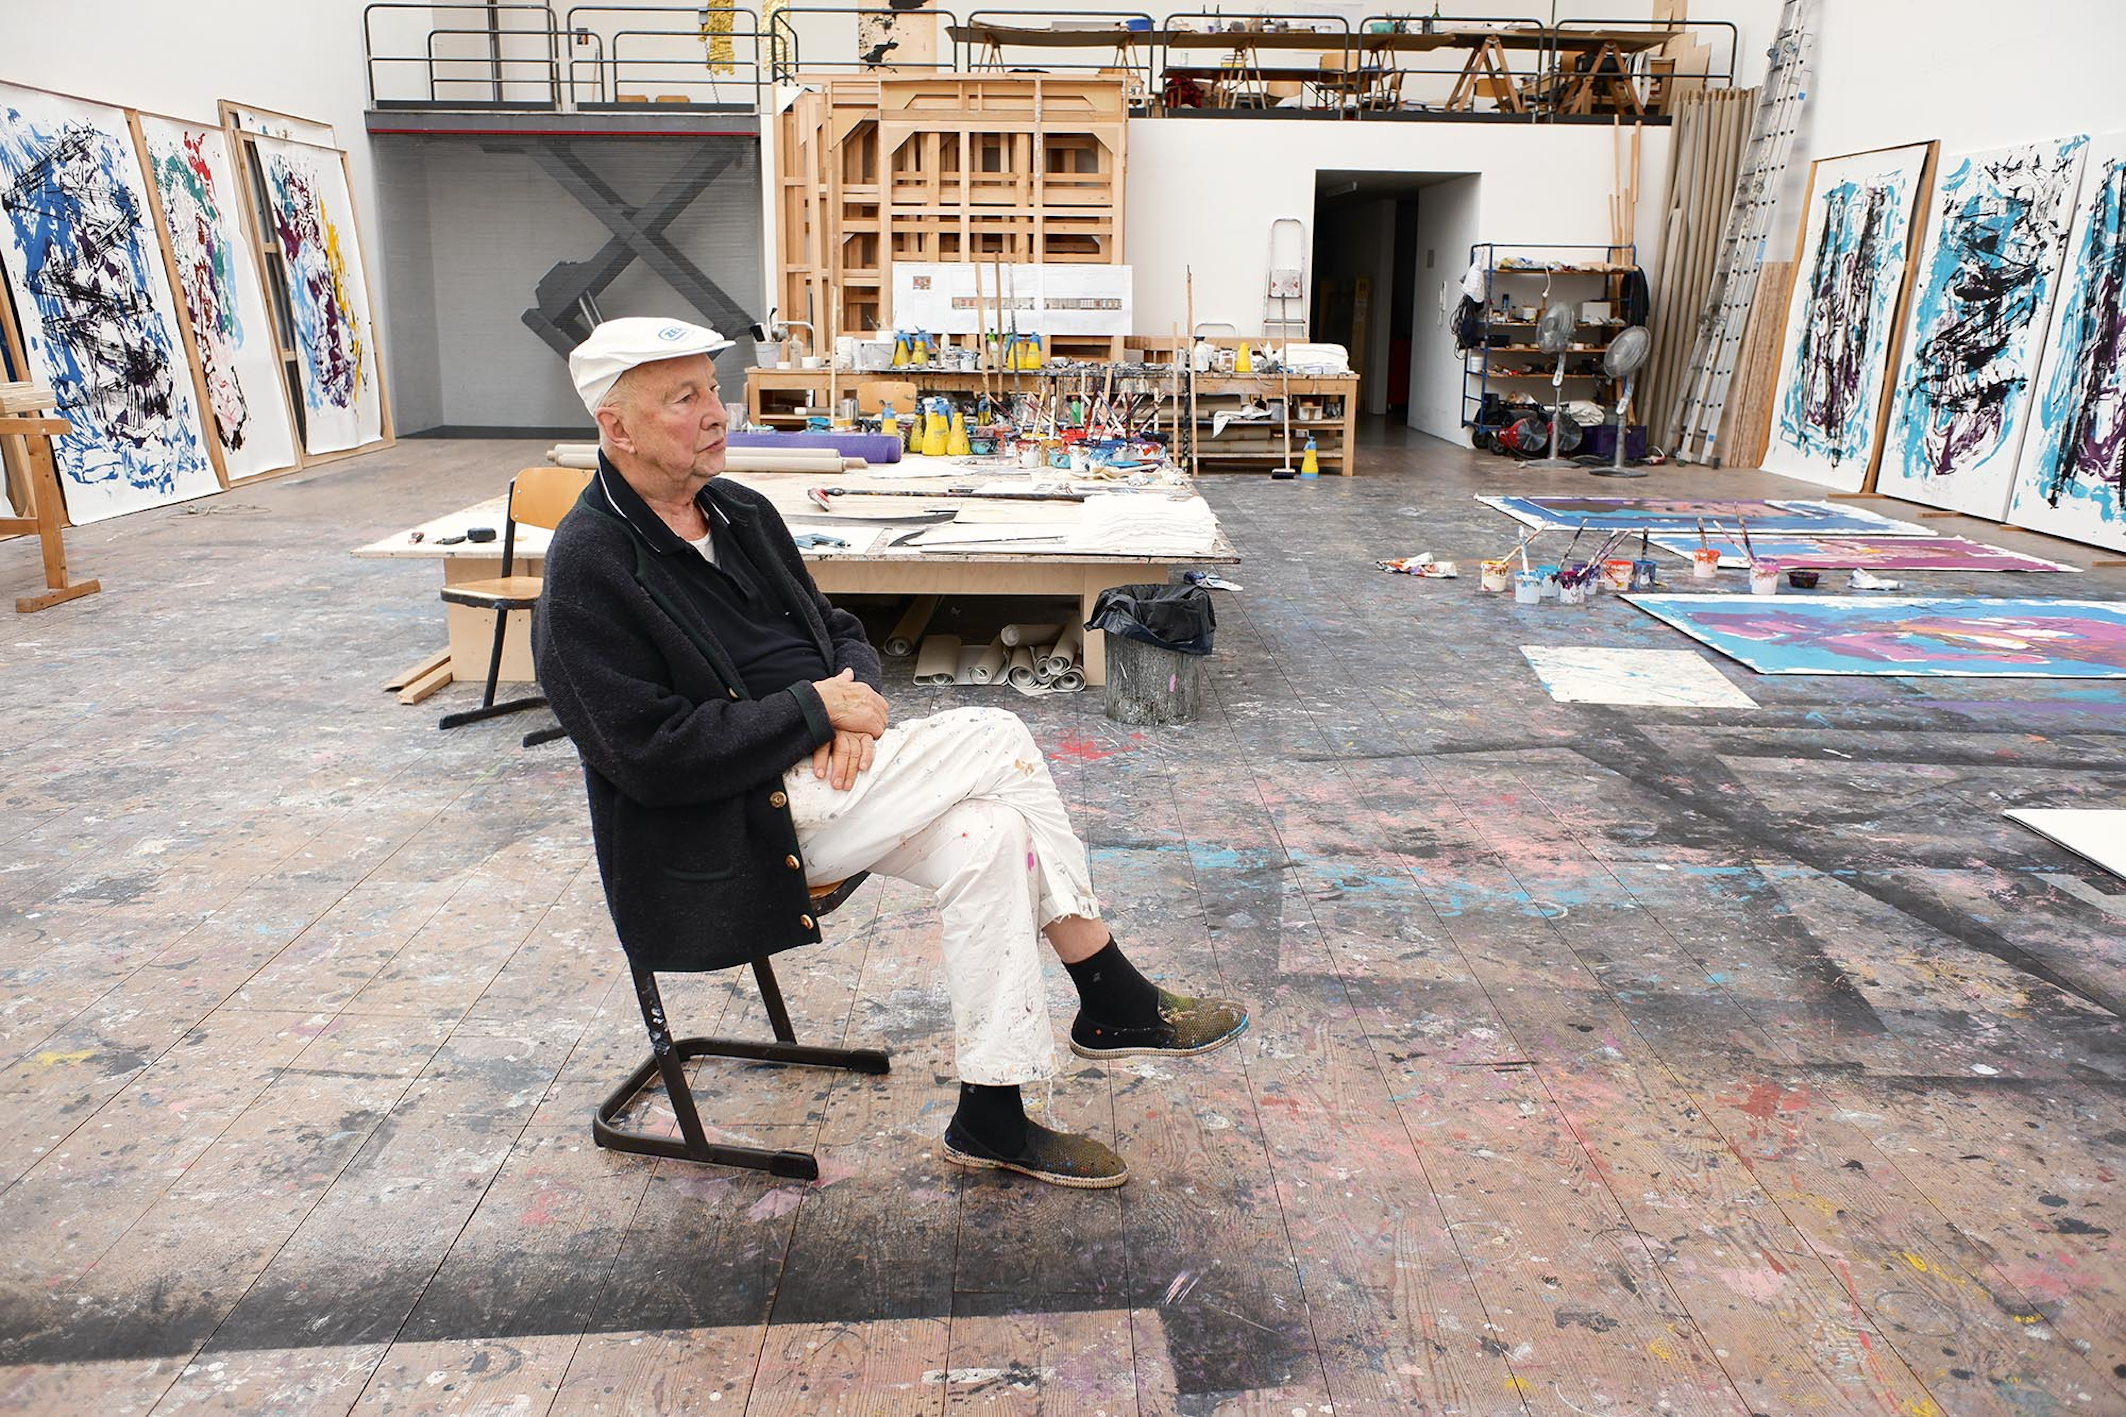 Painter Georg Baselitz on Why He Thinks We're Living in a 'Quota-ocracy,' and What It Takes to Be a Great Artist Today